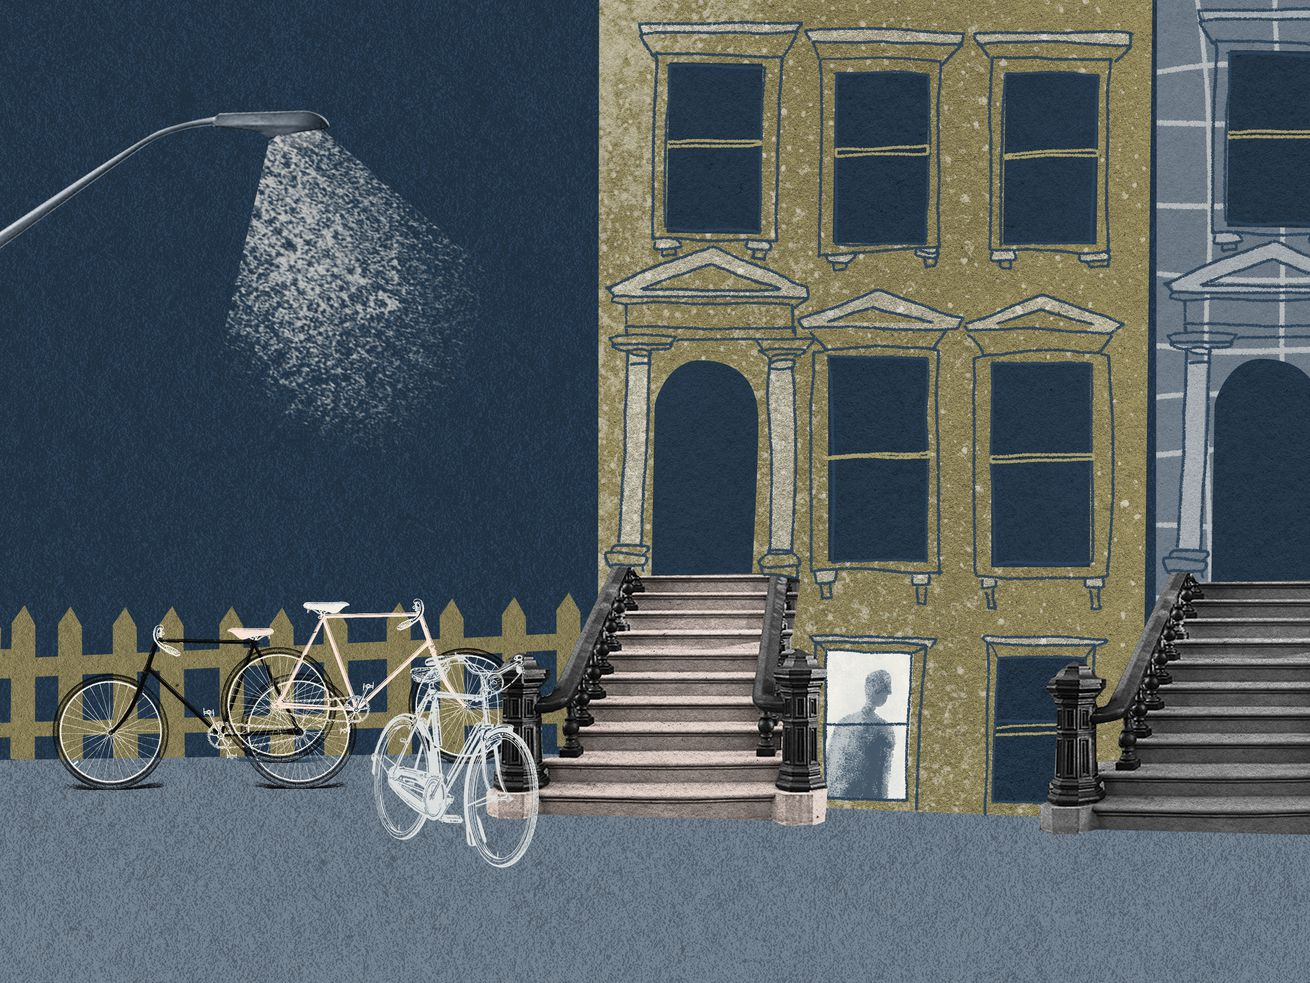 An illustration of an apartment building at night, with a streetlamp hanging over a sidewalk filled with bikes.